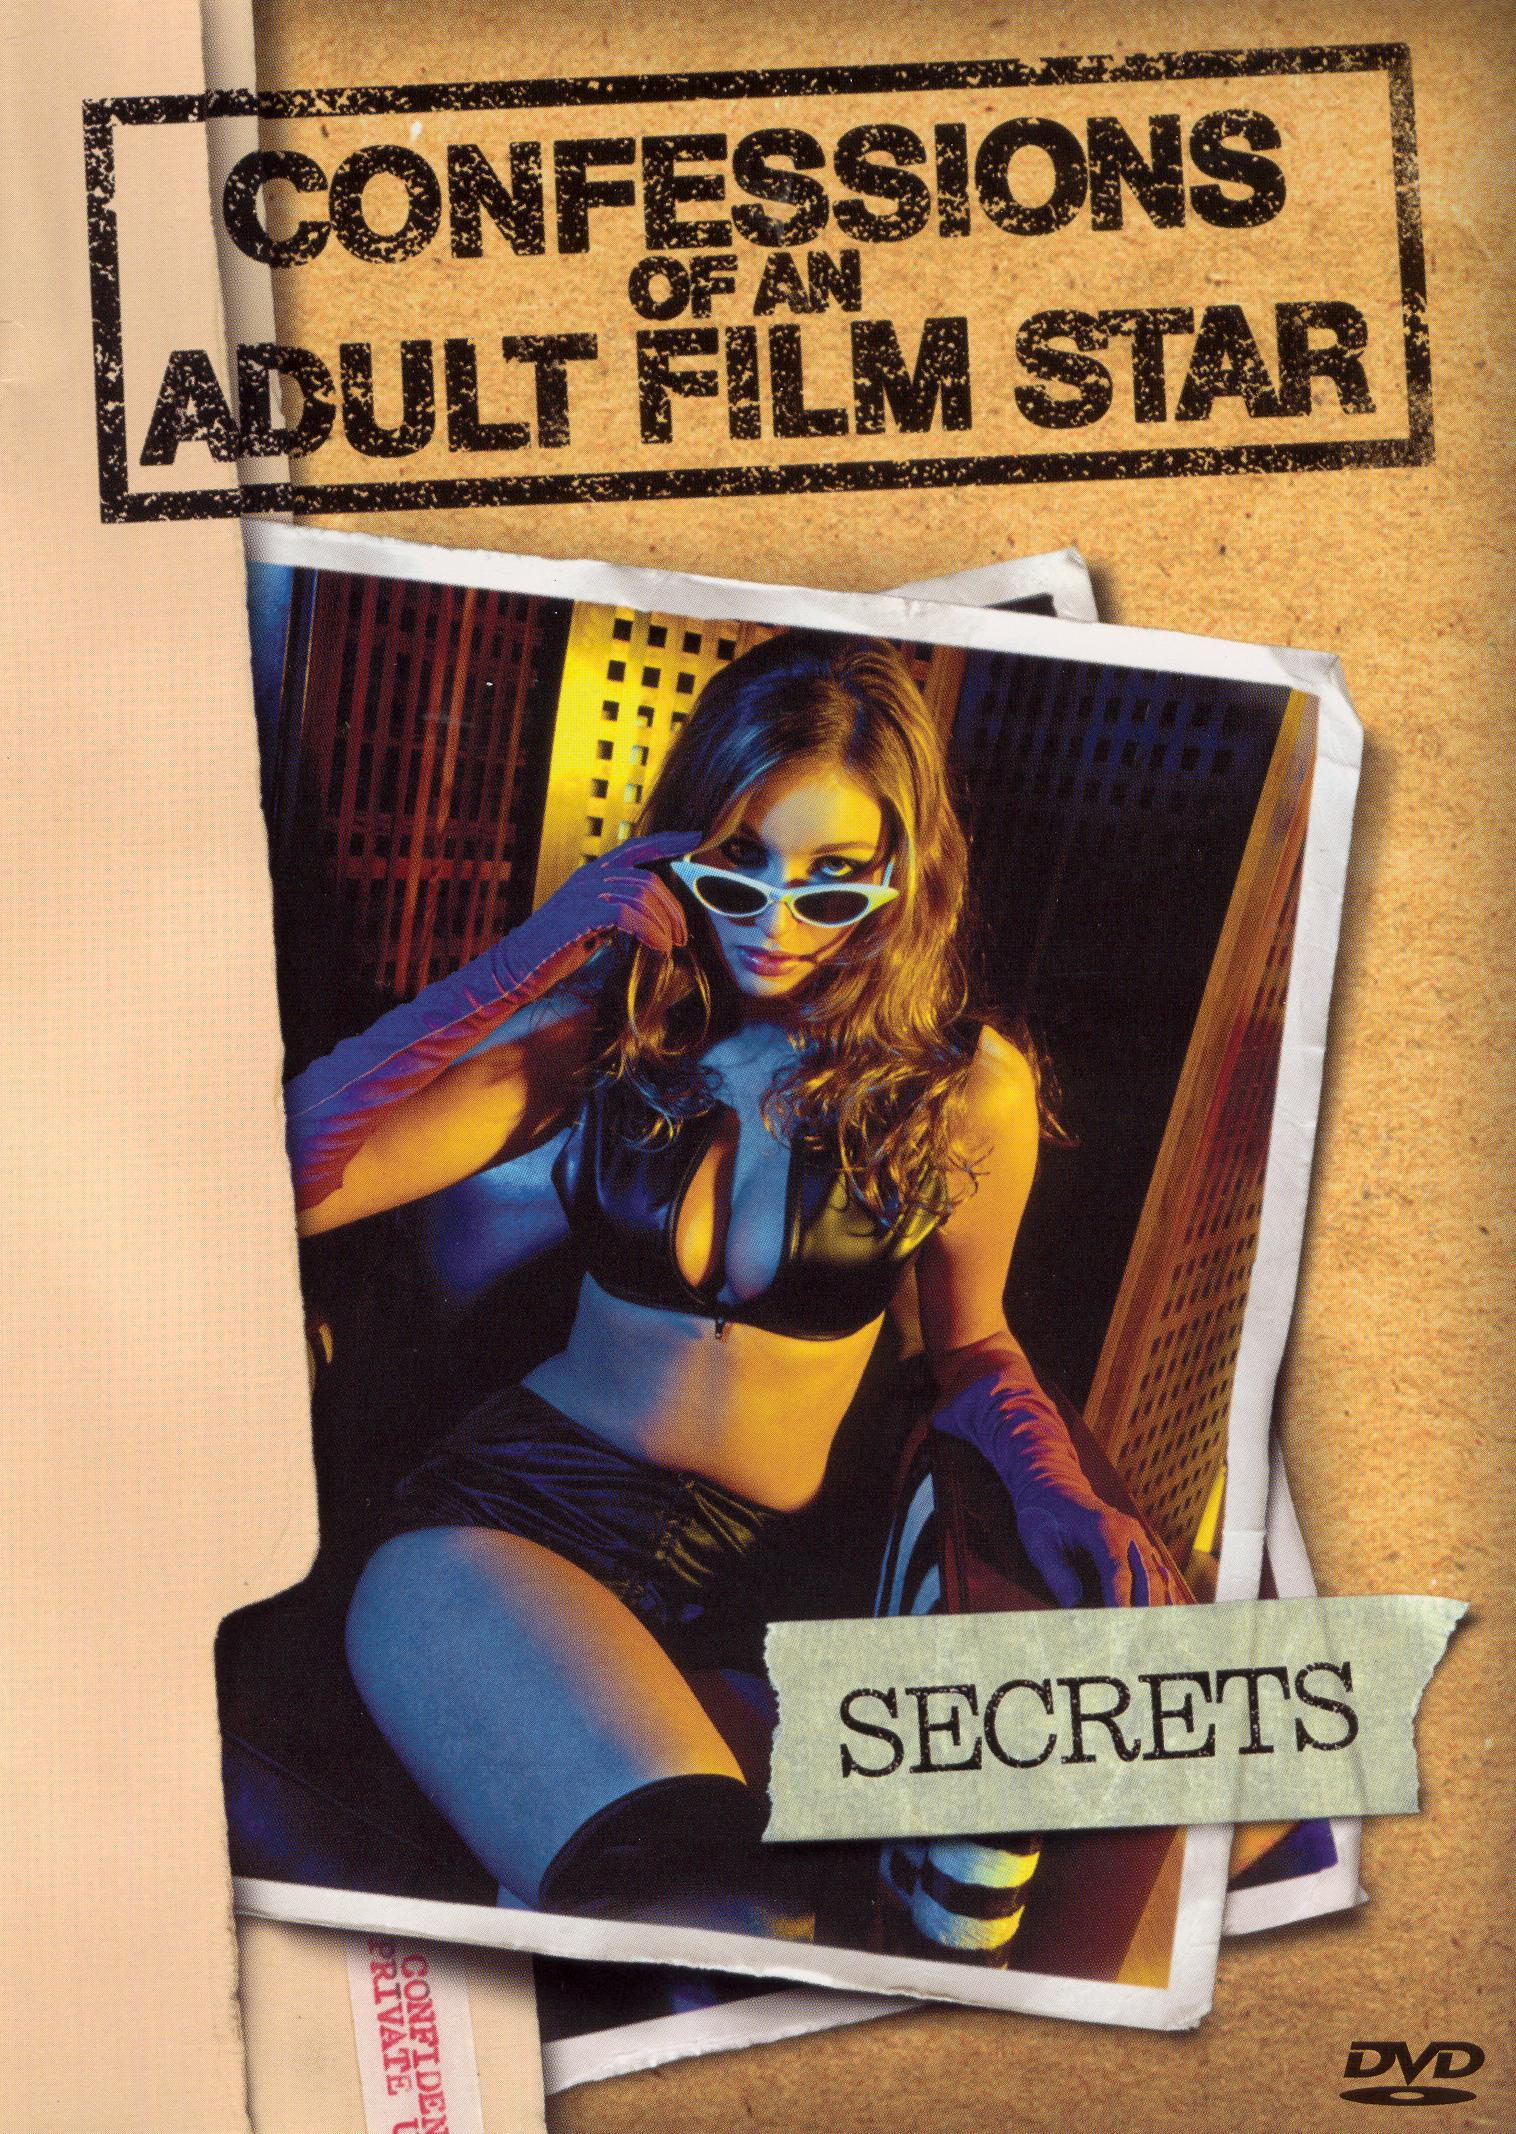 Confessions of an Adult Film Star: Secrets